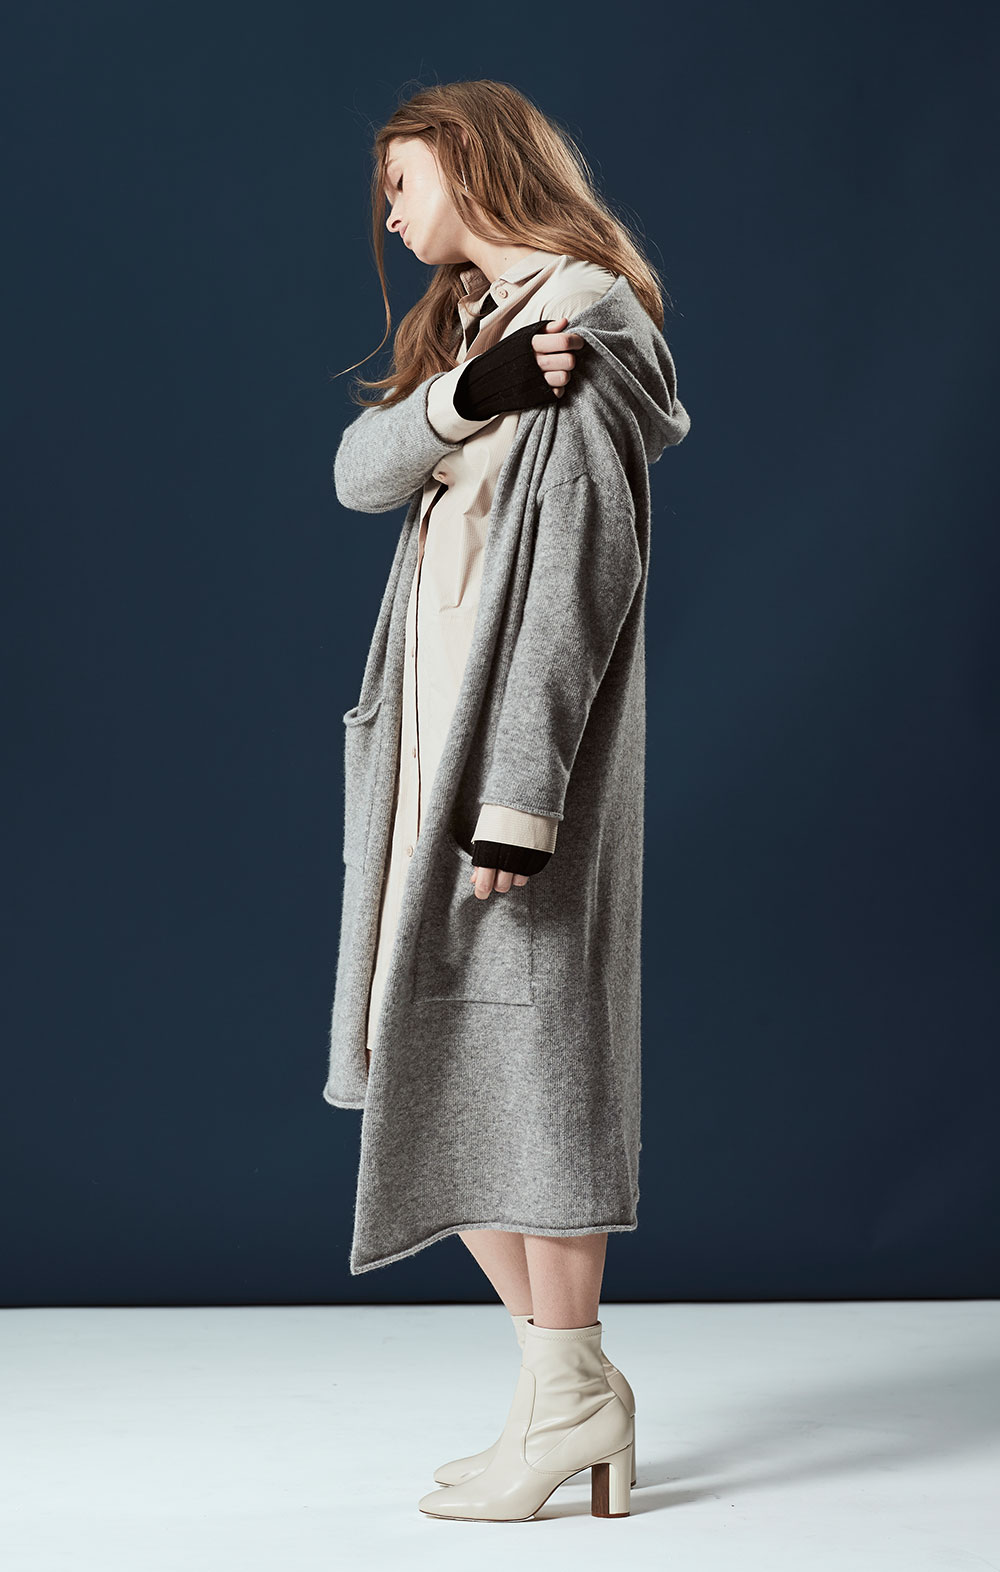 Cashmere-blend Hooded Cardigan FBK090-GRY Open Sleeve Shirt Dress FBD050-BEG Long Sleeve Ribbed Pullover FBK012-BLK